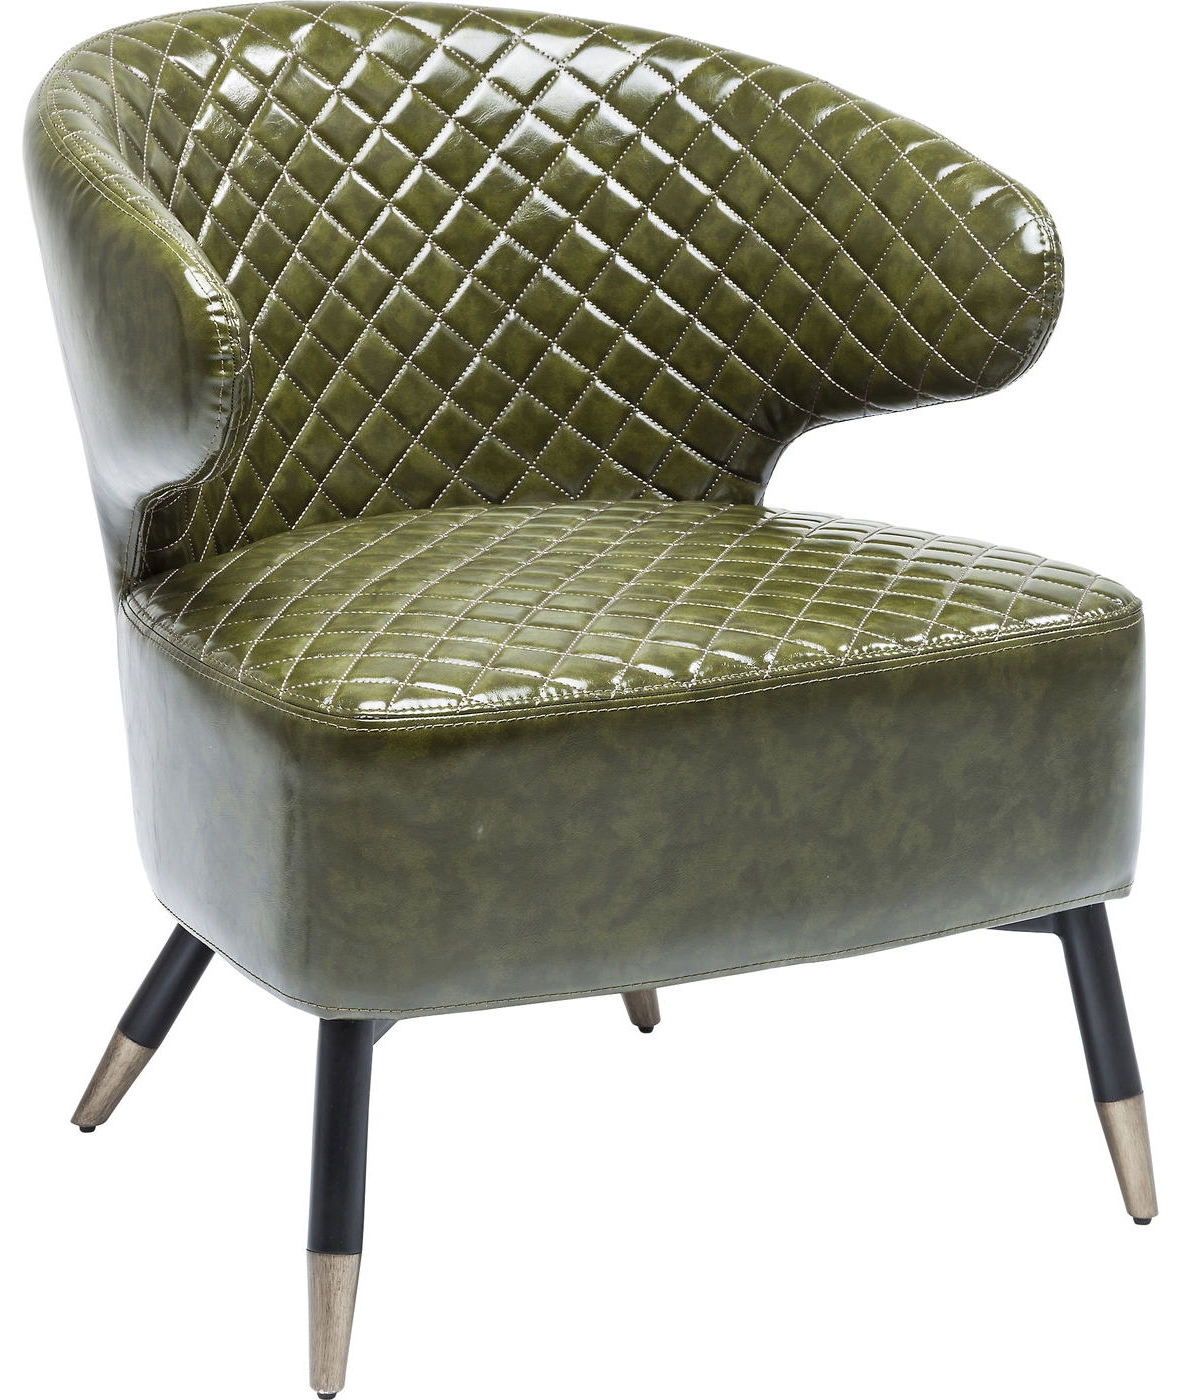 Kare Design Fauteuil Cocktail Chair Session – Groen | 4025621808183